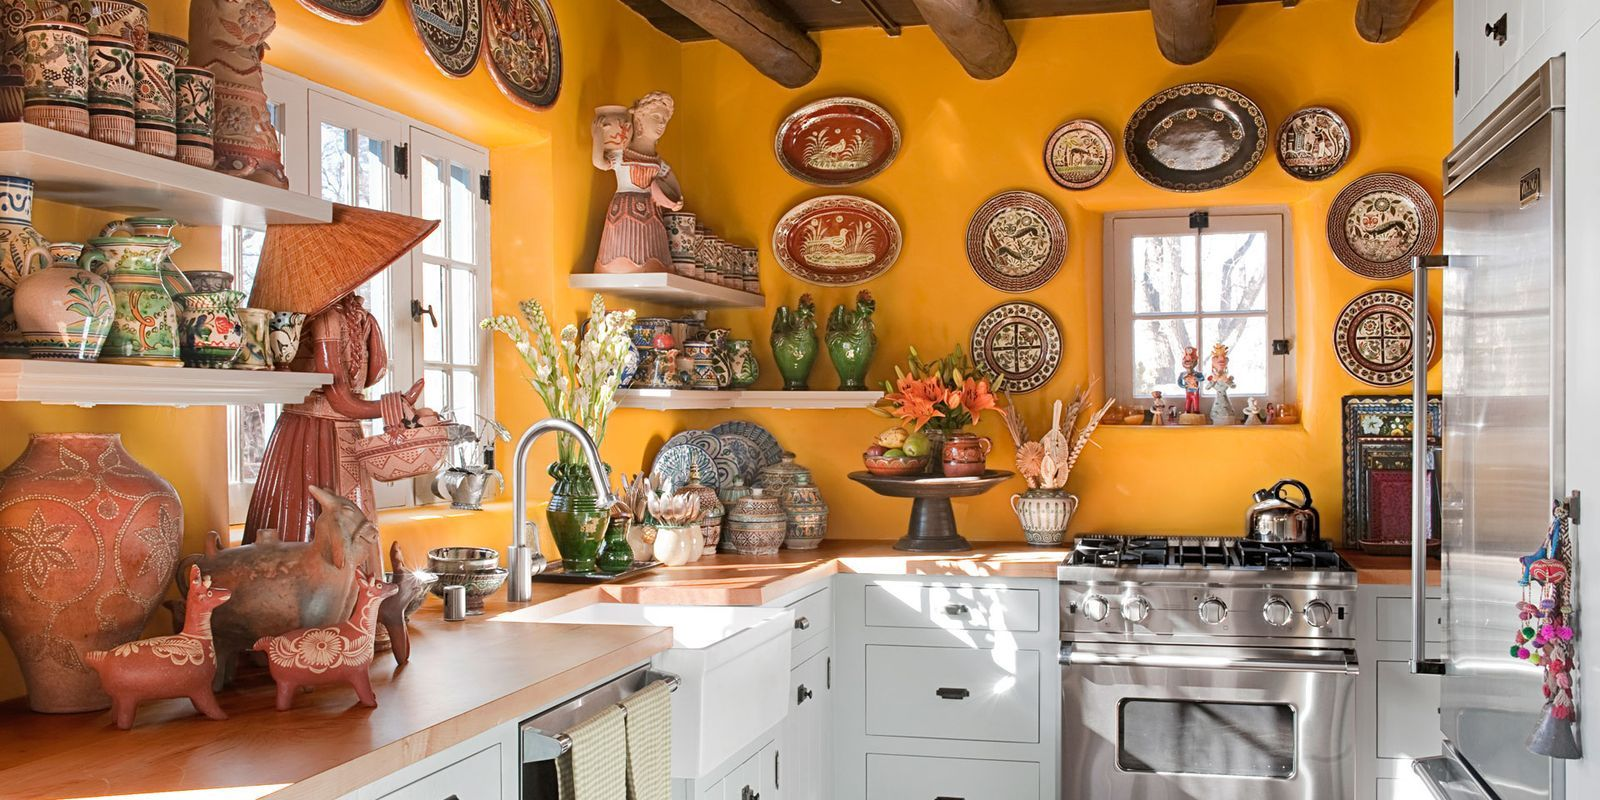 Charming An Inviting, Traditional Adobe Kitchen With Santa Fe Style